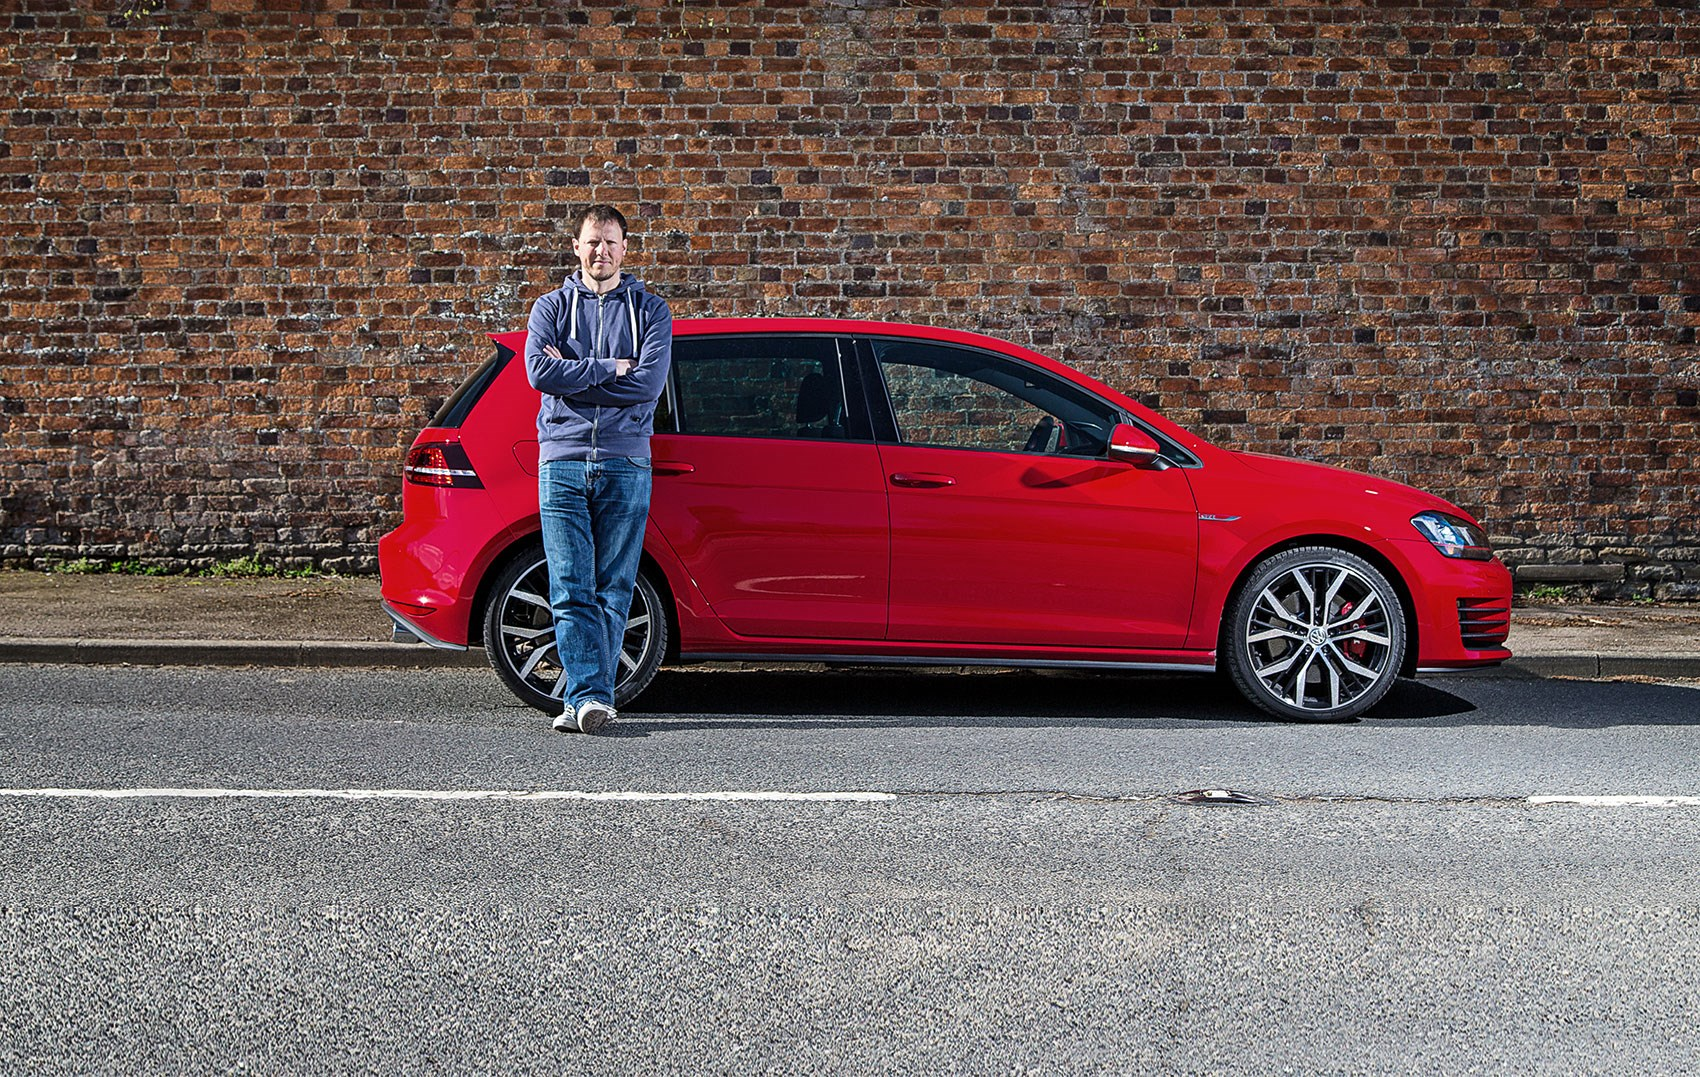 Mark Walton bids his Golf GTI farewell